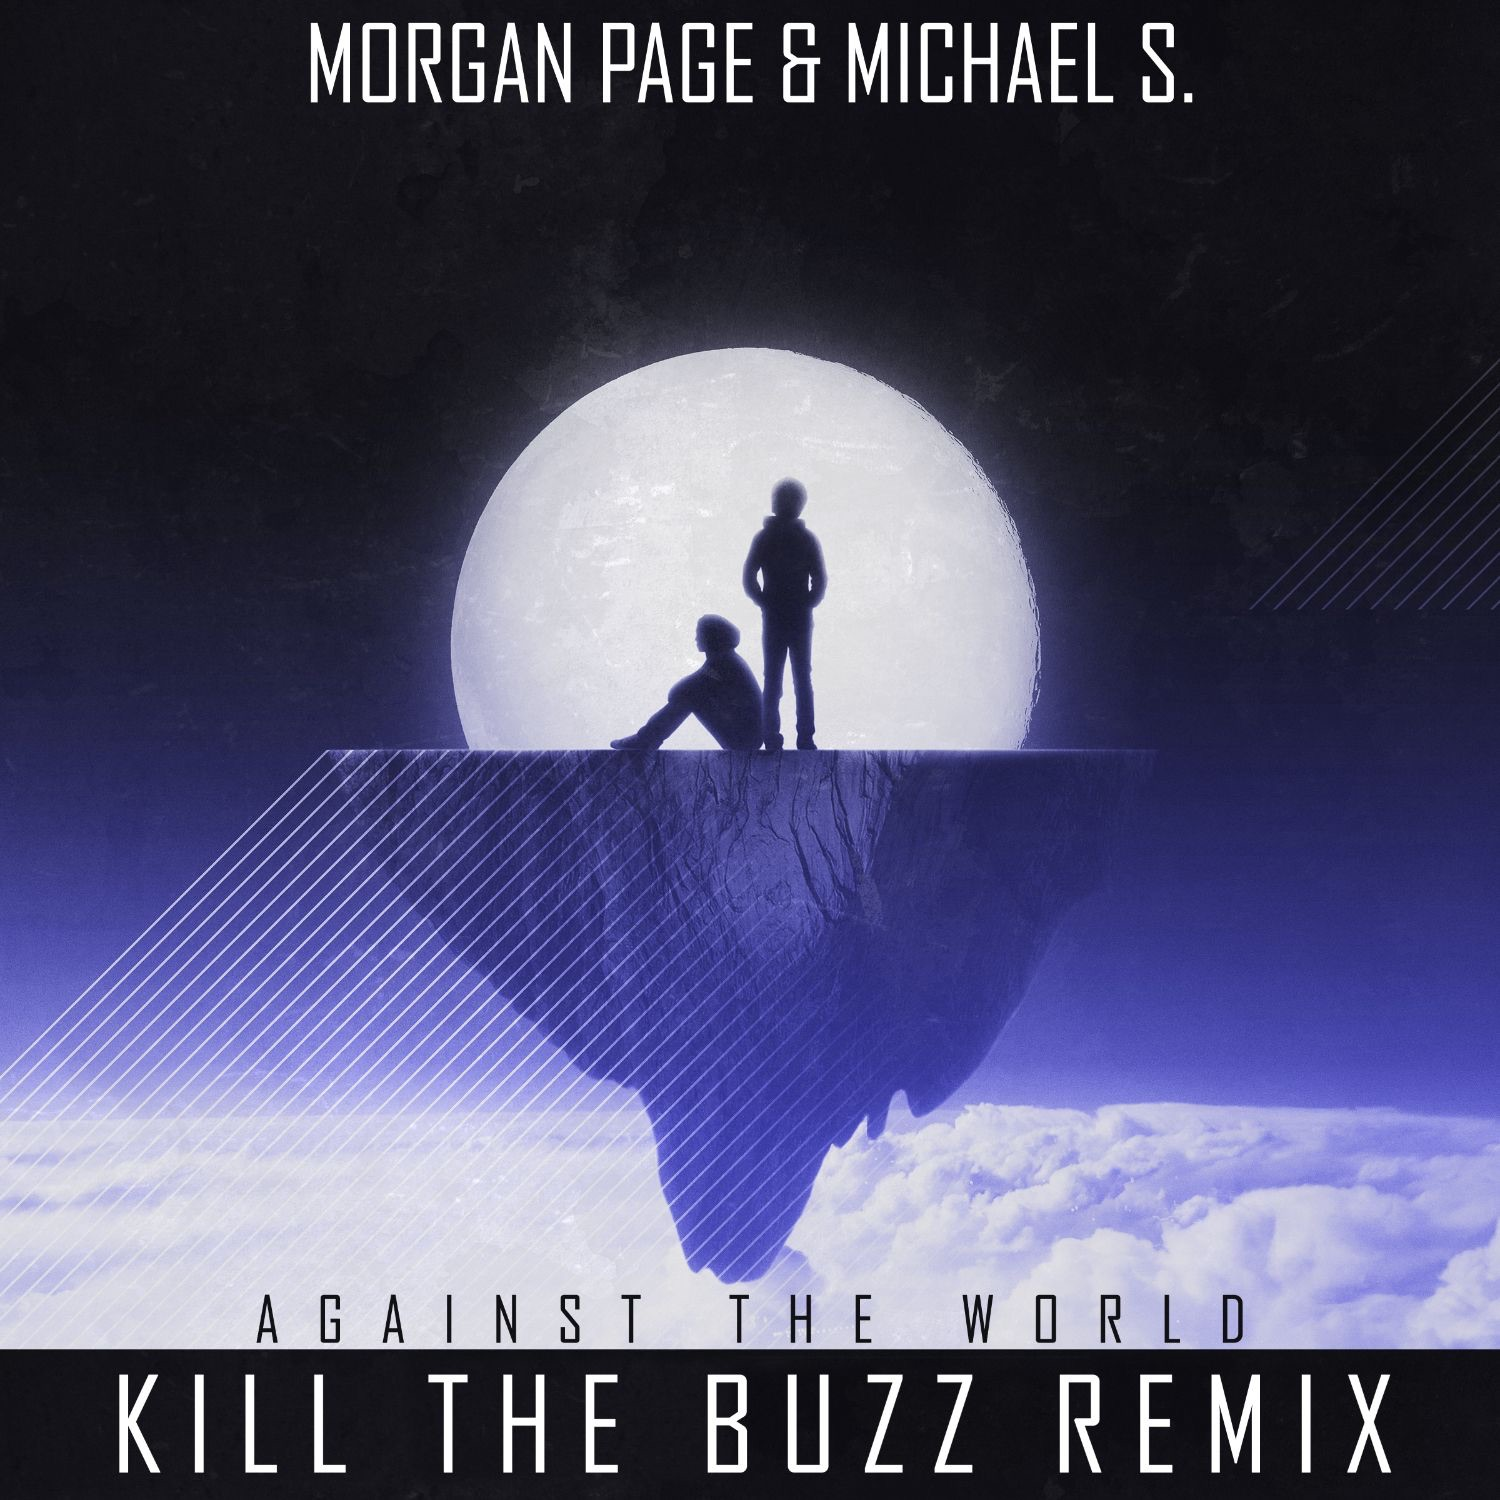 Against the World (Kill the Buzz Remix) - Single